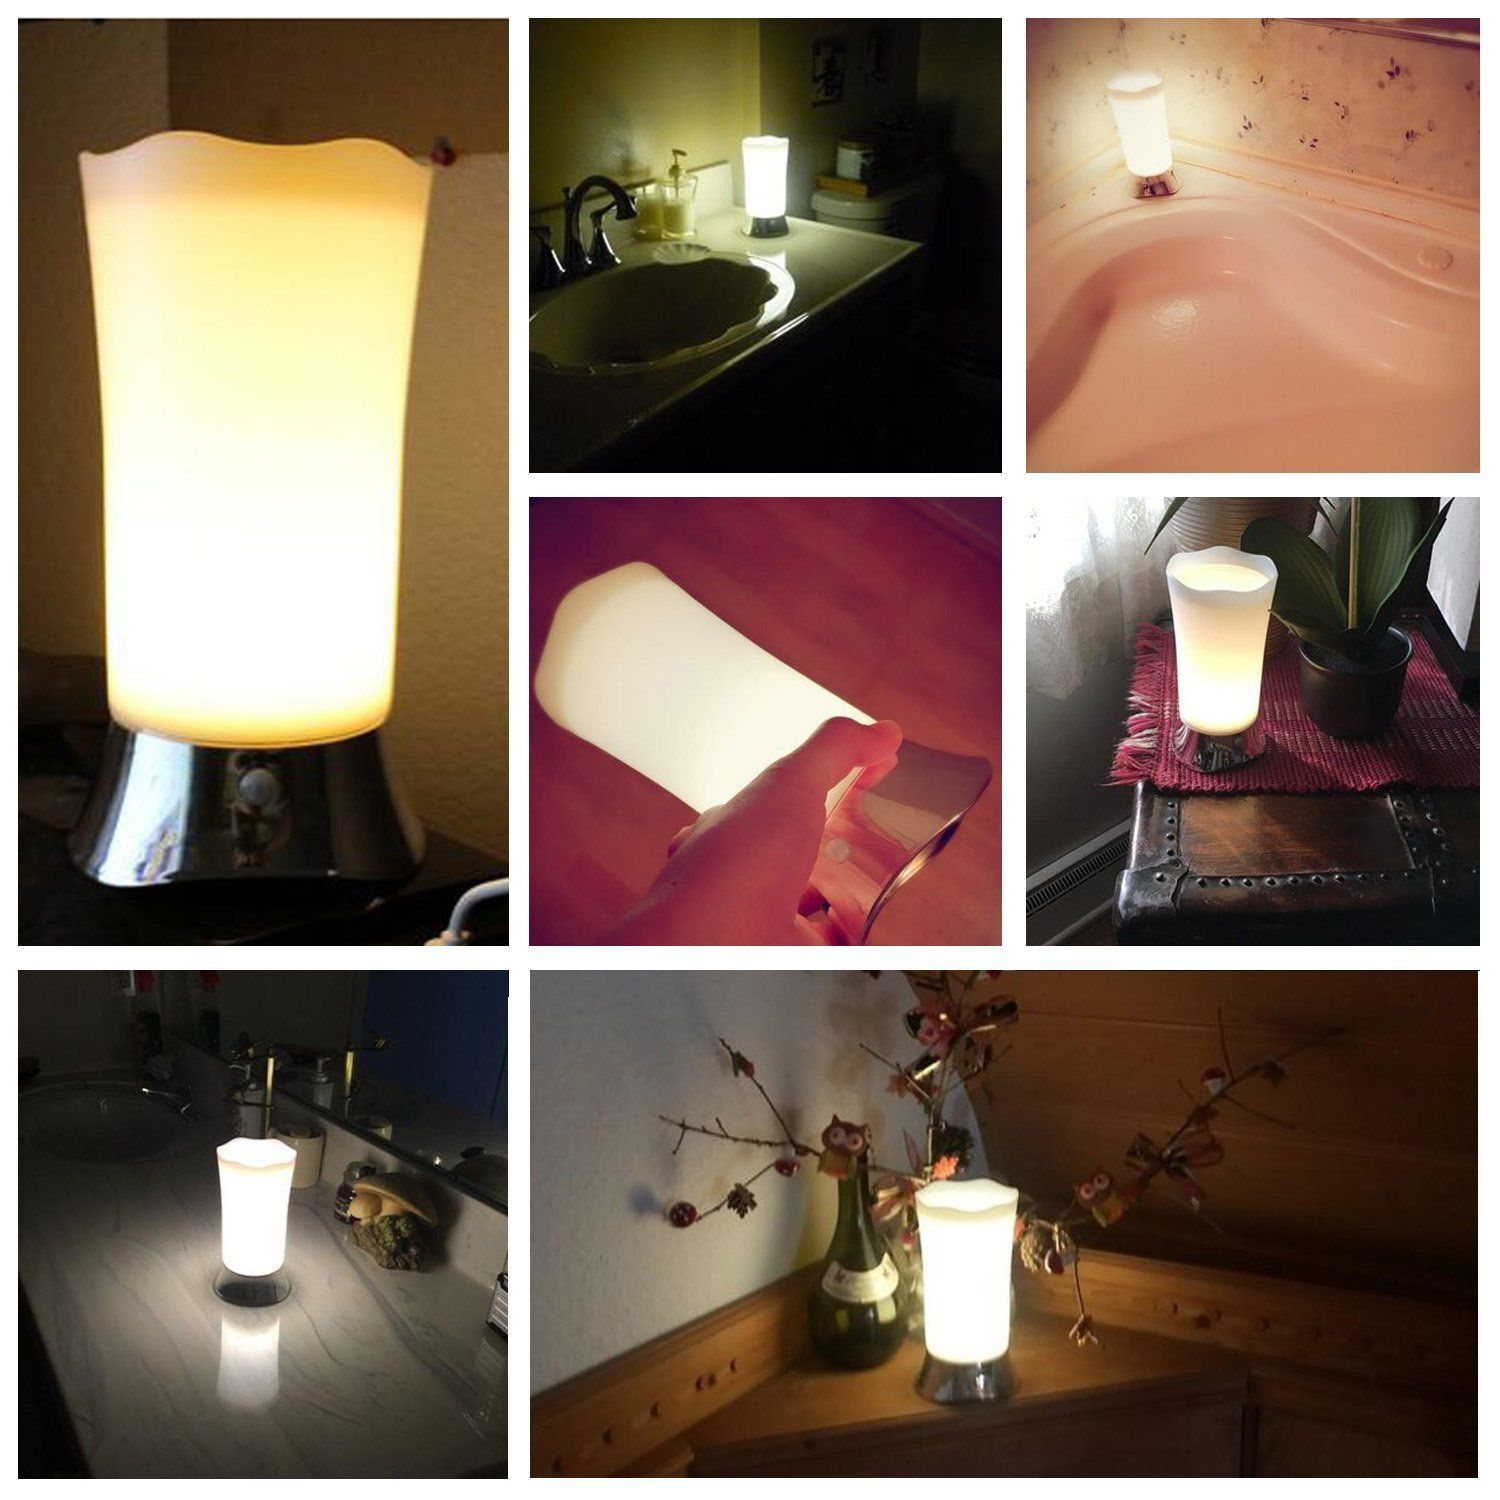 ZEEFO Table Lamps Indoor Motion Sensor LED Night Light - Portable Retro Battery Powered Light for Bedroom, Bathroom, Babyroom, Dining and Reading